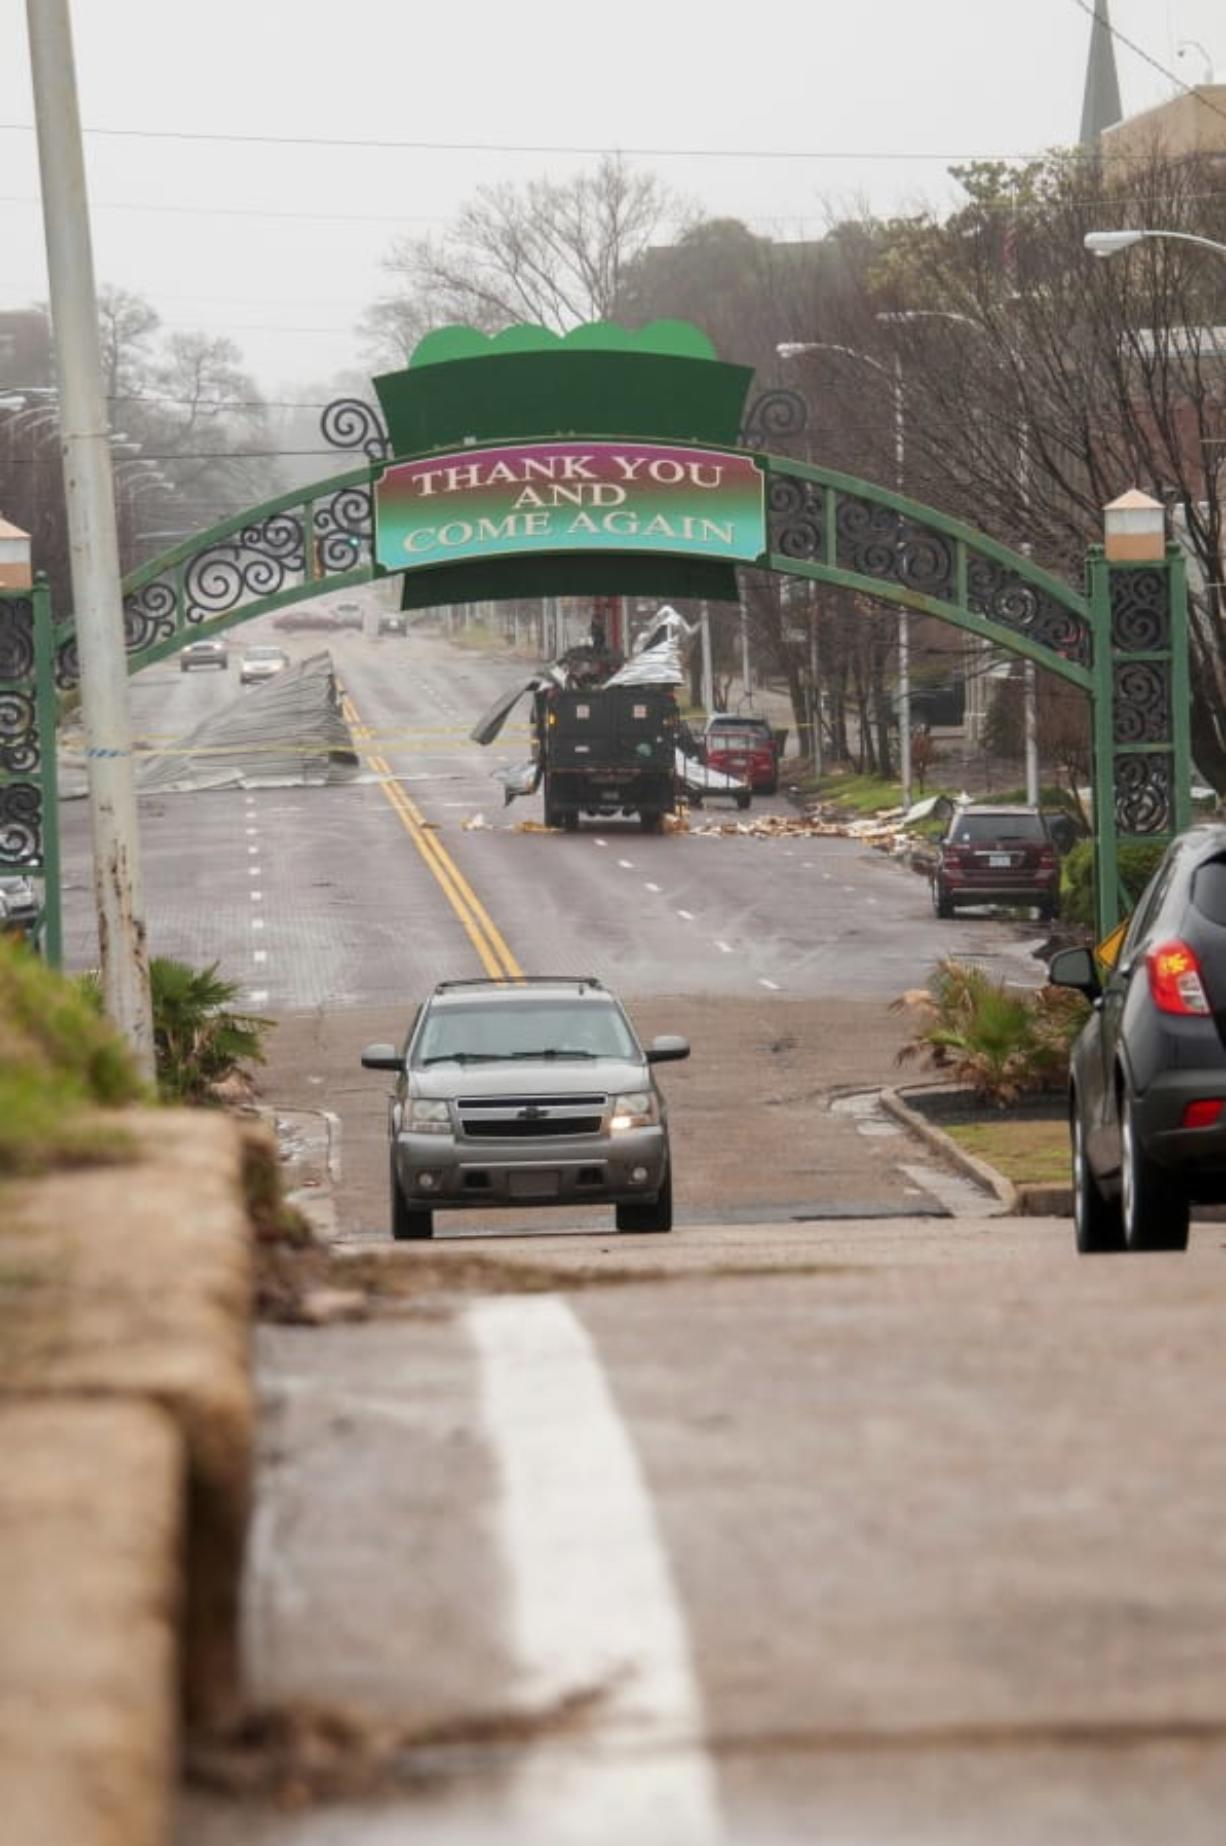 City of Greenville, Miss., trucks and employees, work to clean up debris from a storm along Main Street, Saturday, Jan. 11, 2020, in Greenville, Miss. Severe storms swept across parts of the U.S. South and were blamed for deaths, destruction and damages. (Jon Alverson/The Delta Democrat-Times via AP)